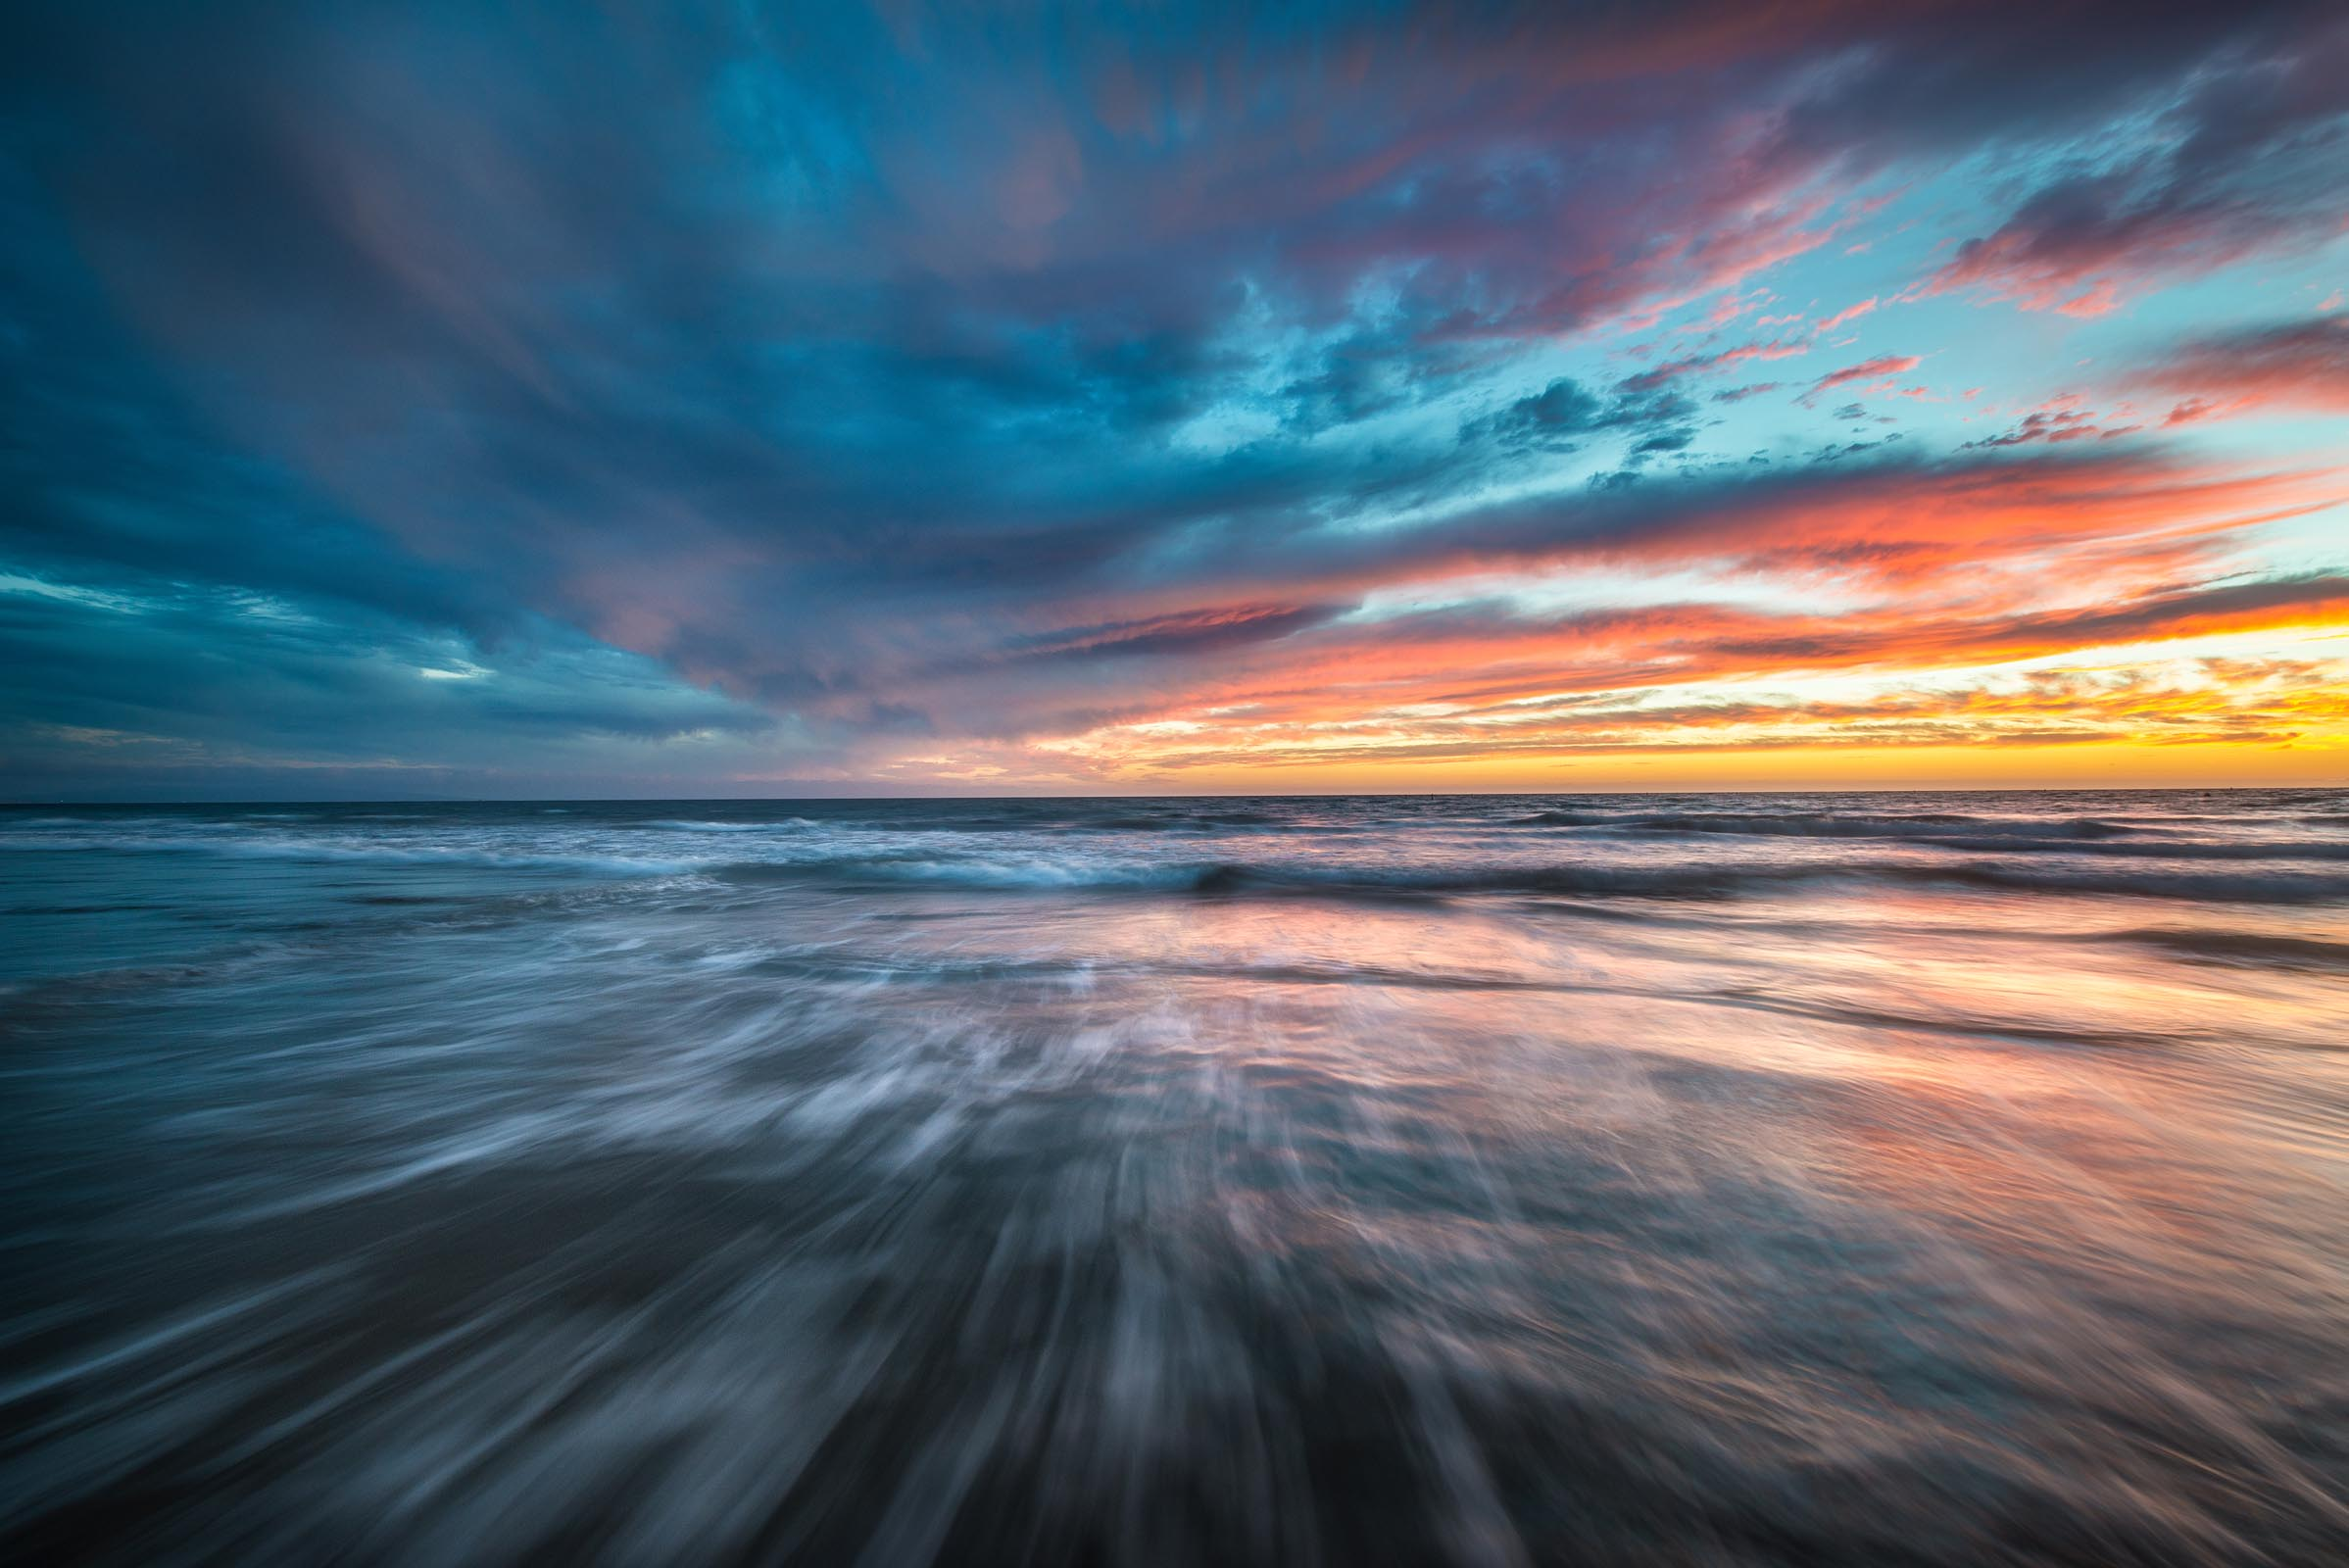 Photograph of Santa Monica Sunset in Santa Monica, California by Brent Goldman Photography